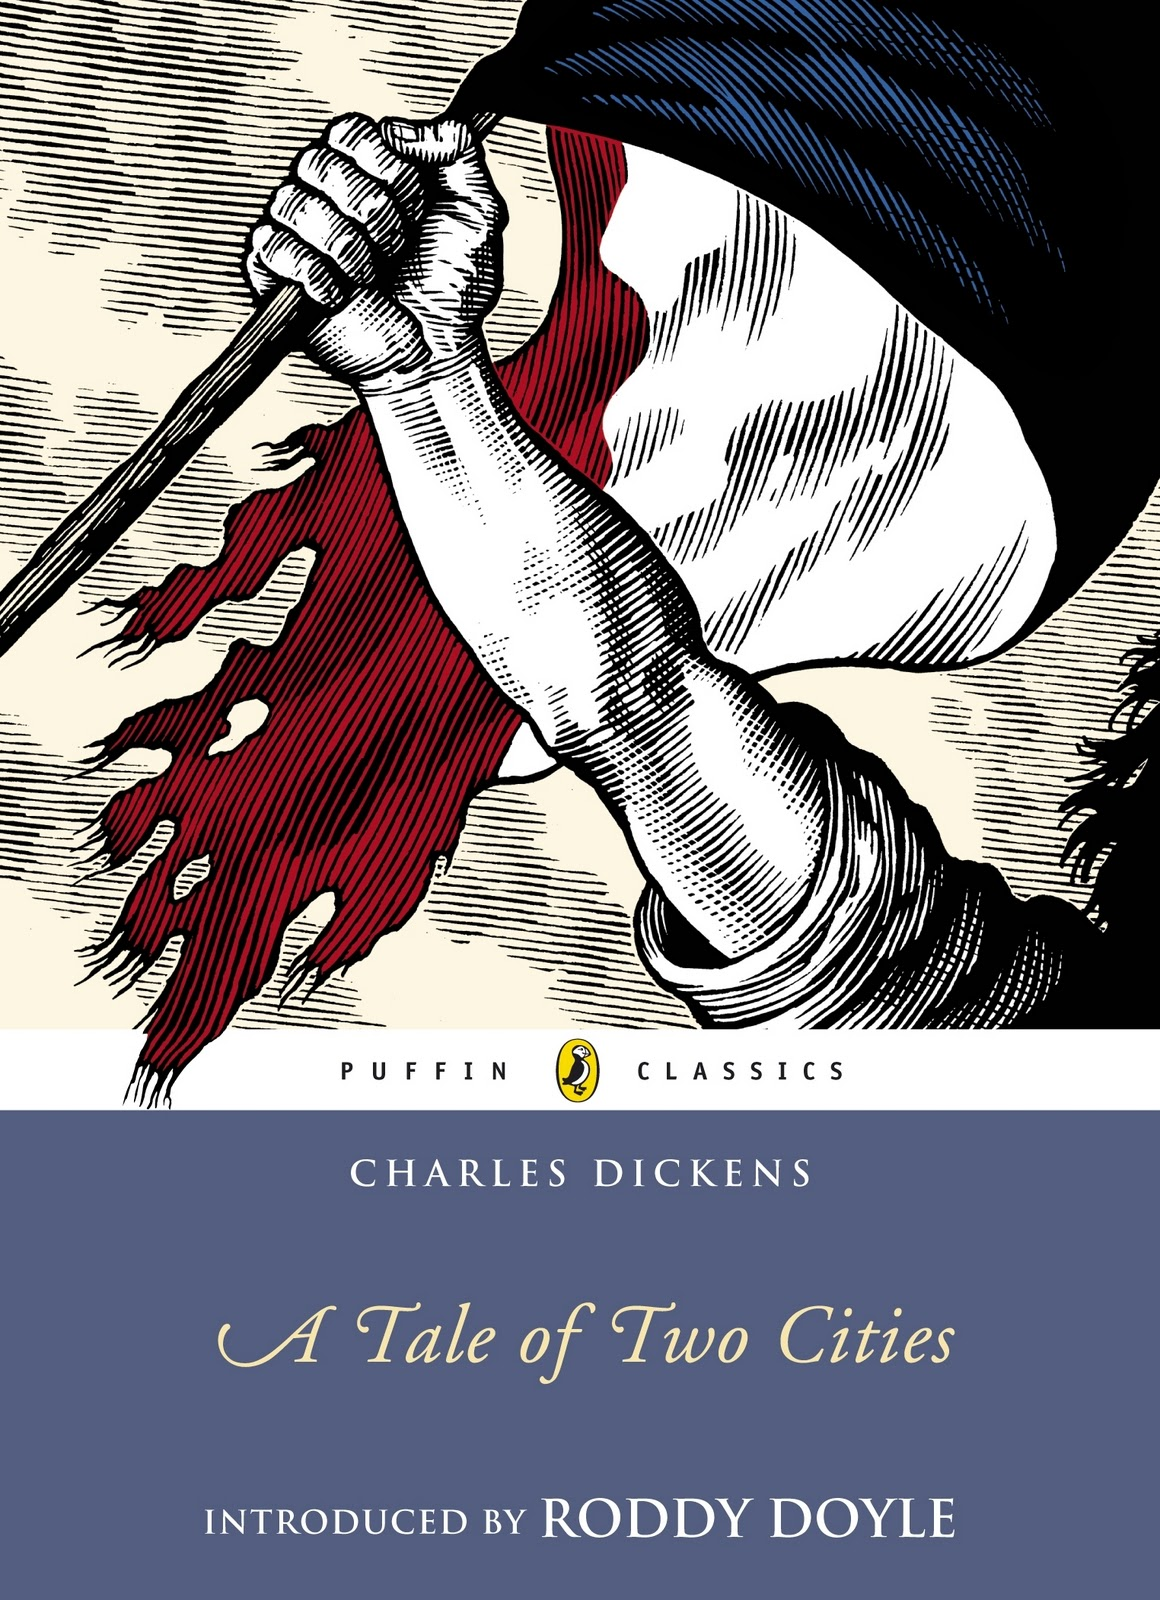 a review of charles dickens a tale of a two cities A noise within presents charles dickens' a tale of two cities adapted by michael poulton directed by julia rodriguez-elliott and geoff elliott.